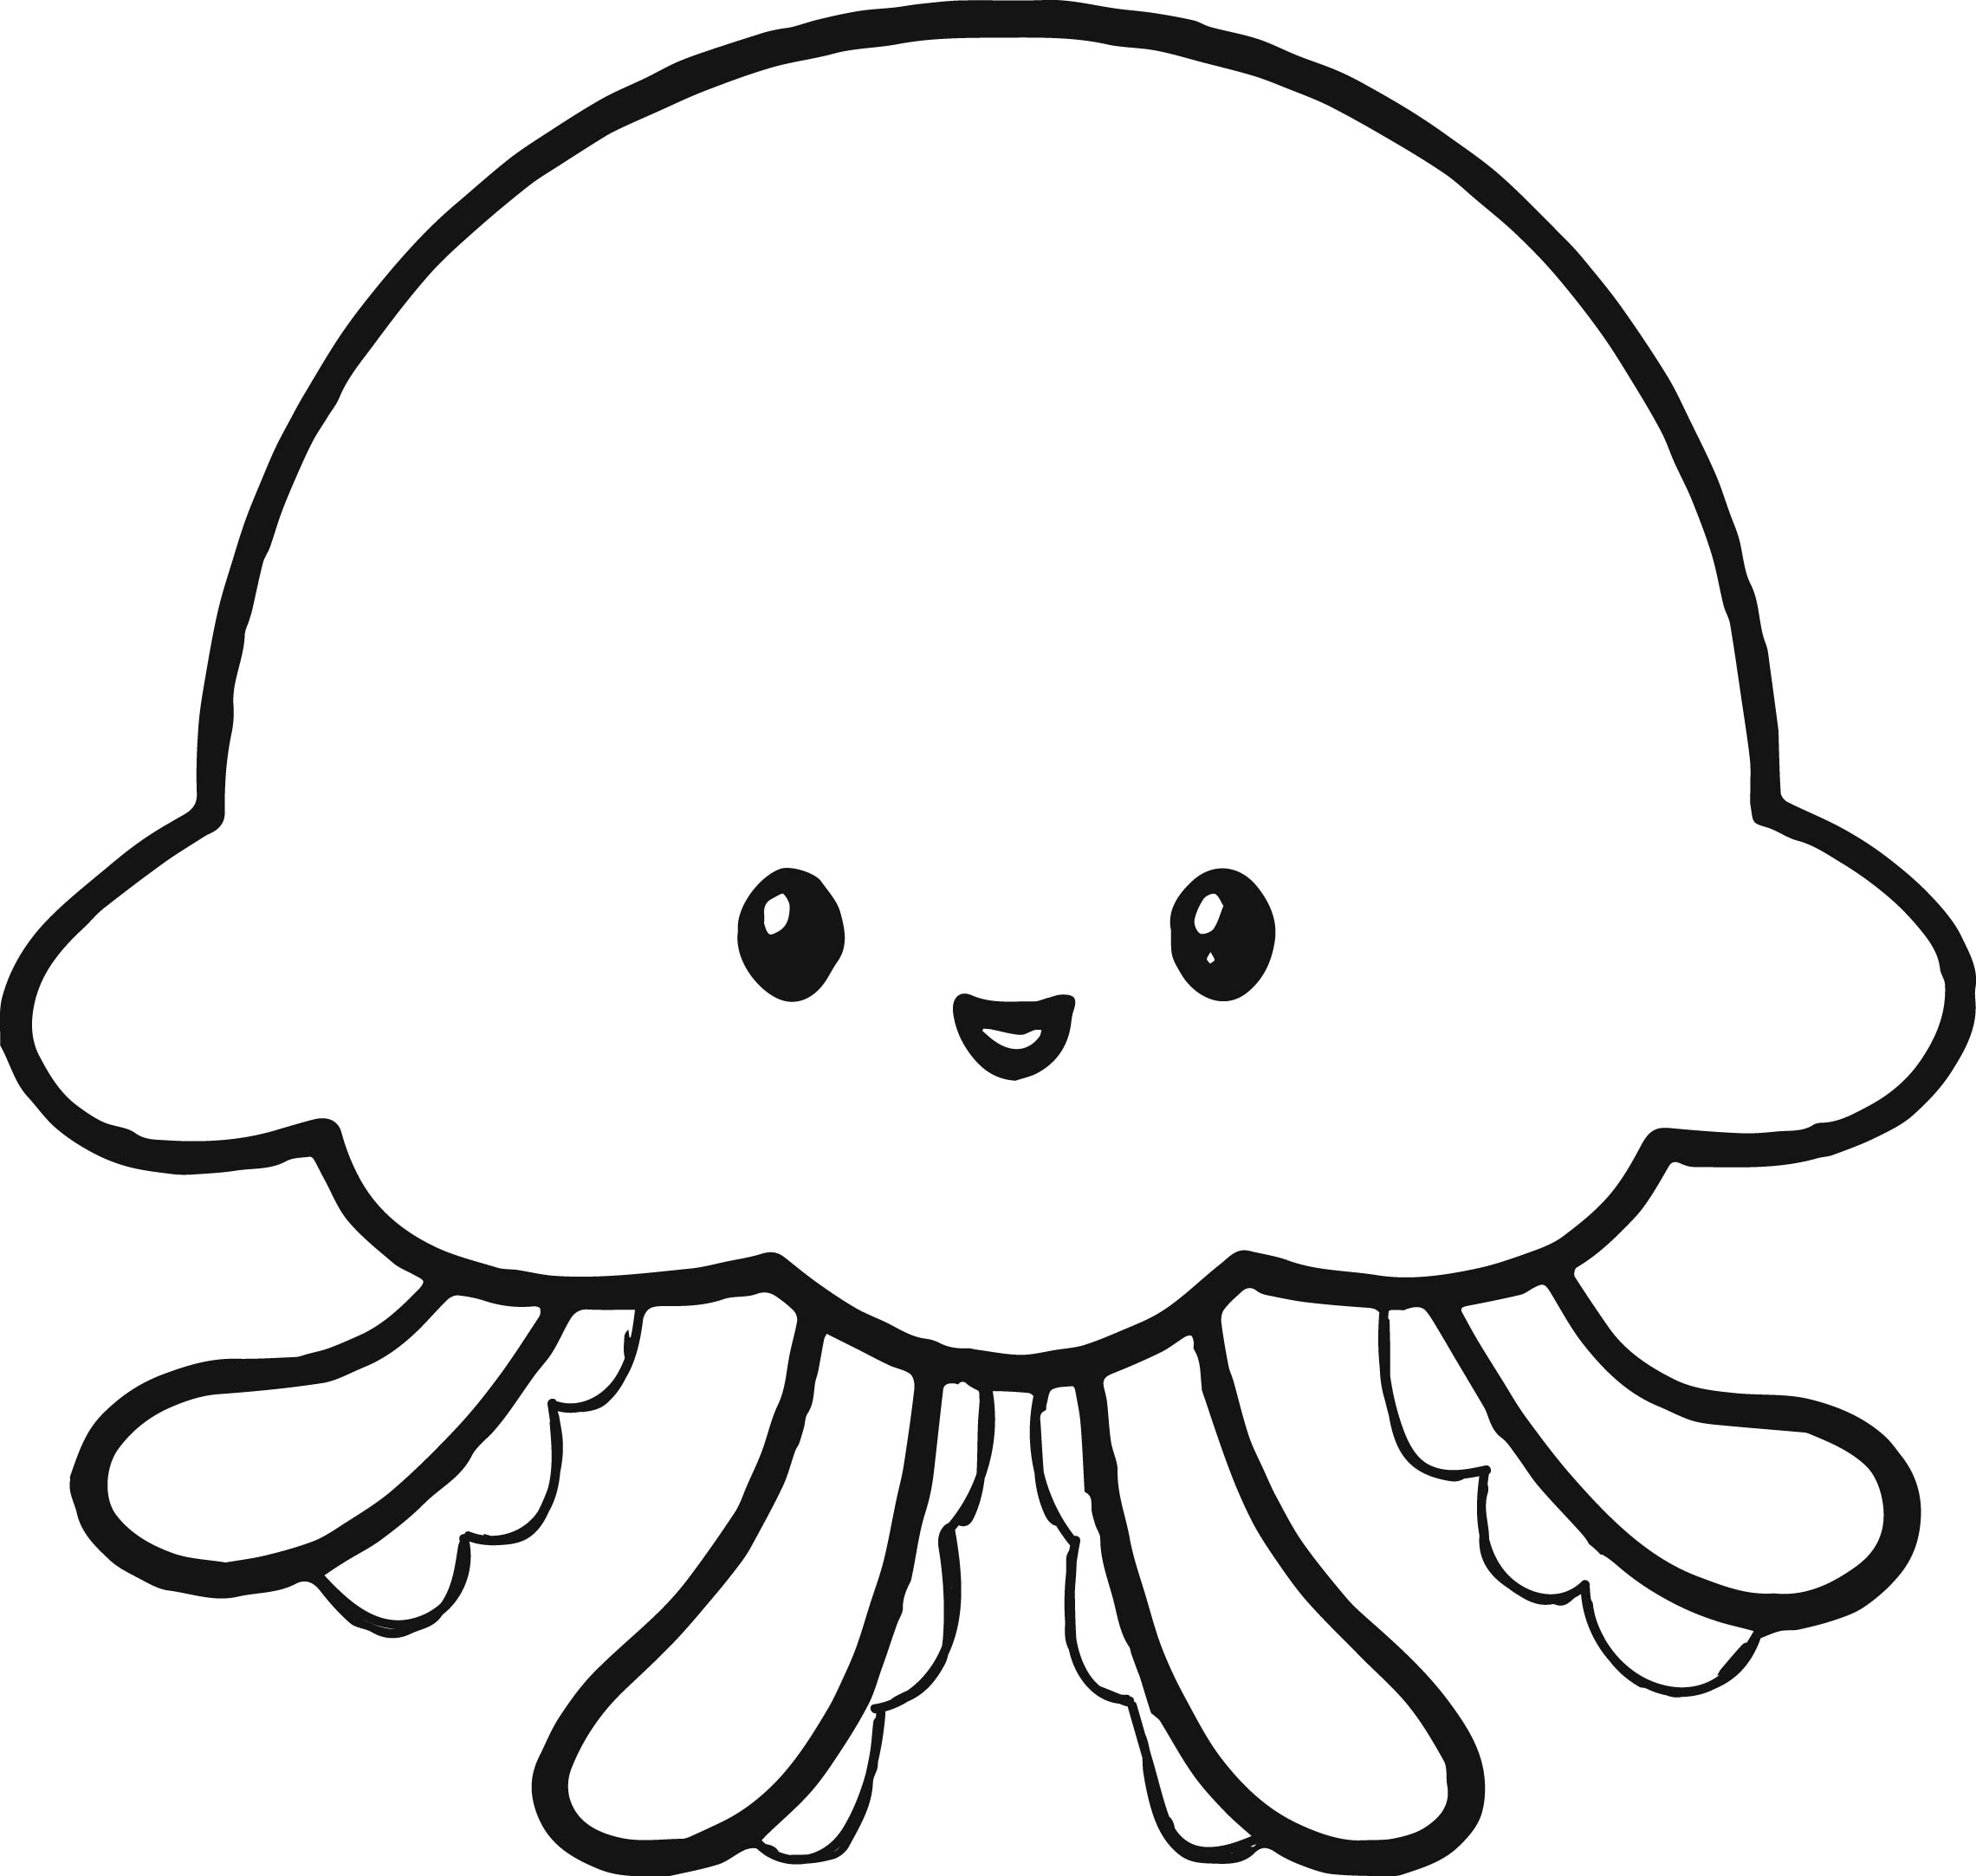 jellyfish coloring jellyfish cute icon coloring page download print coloring jellyfish